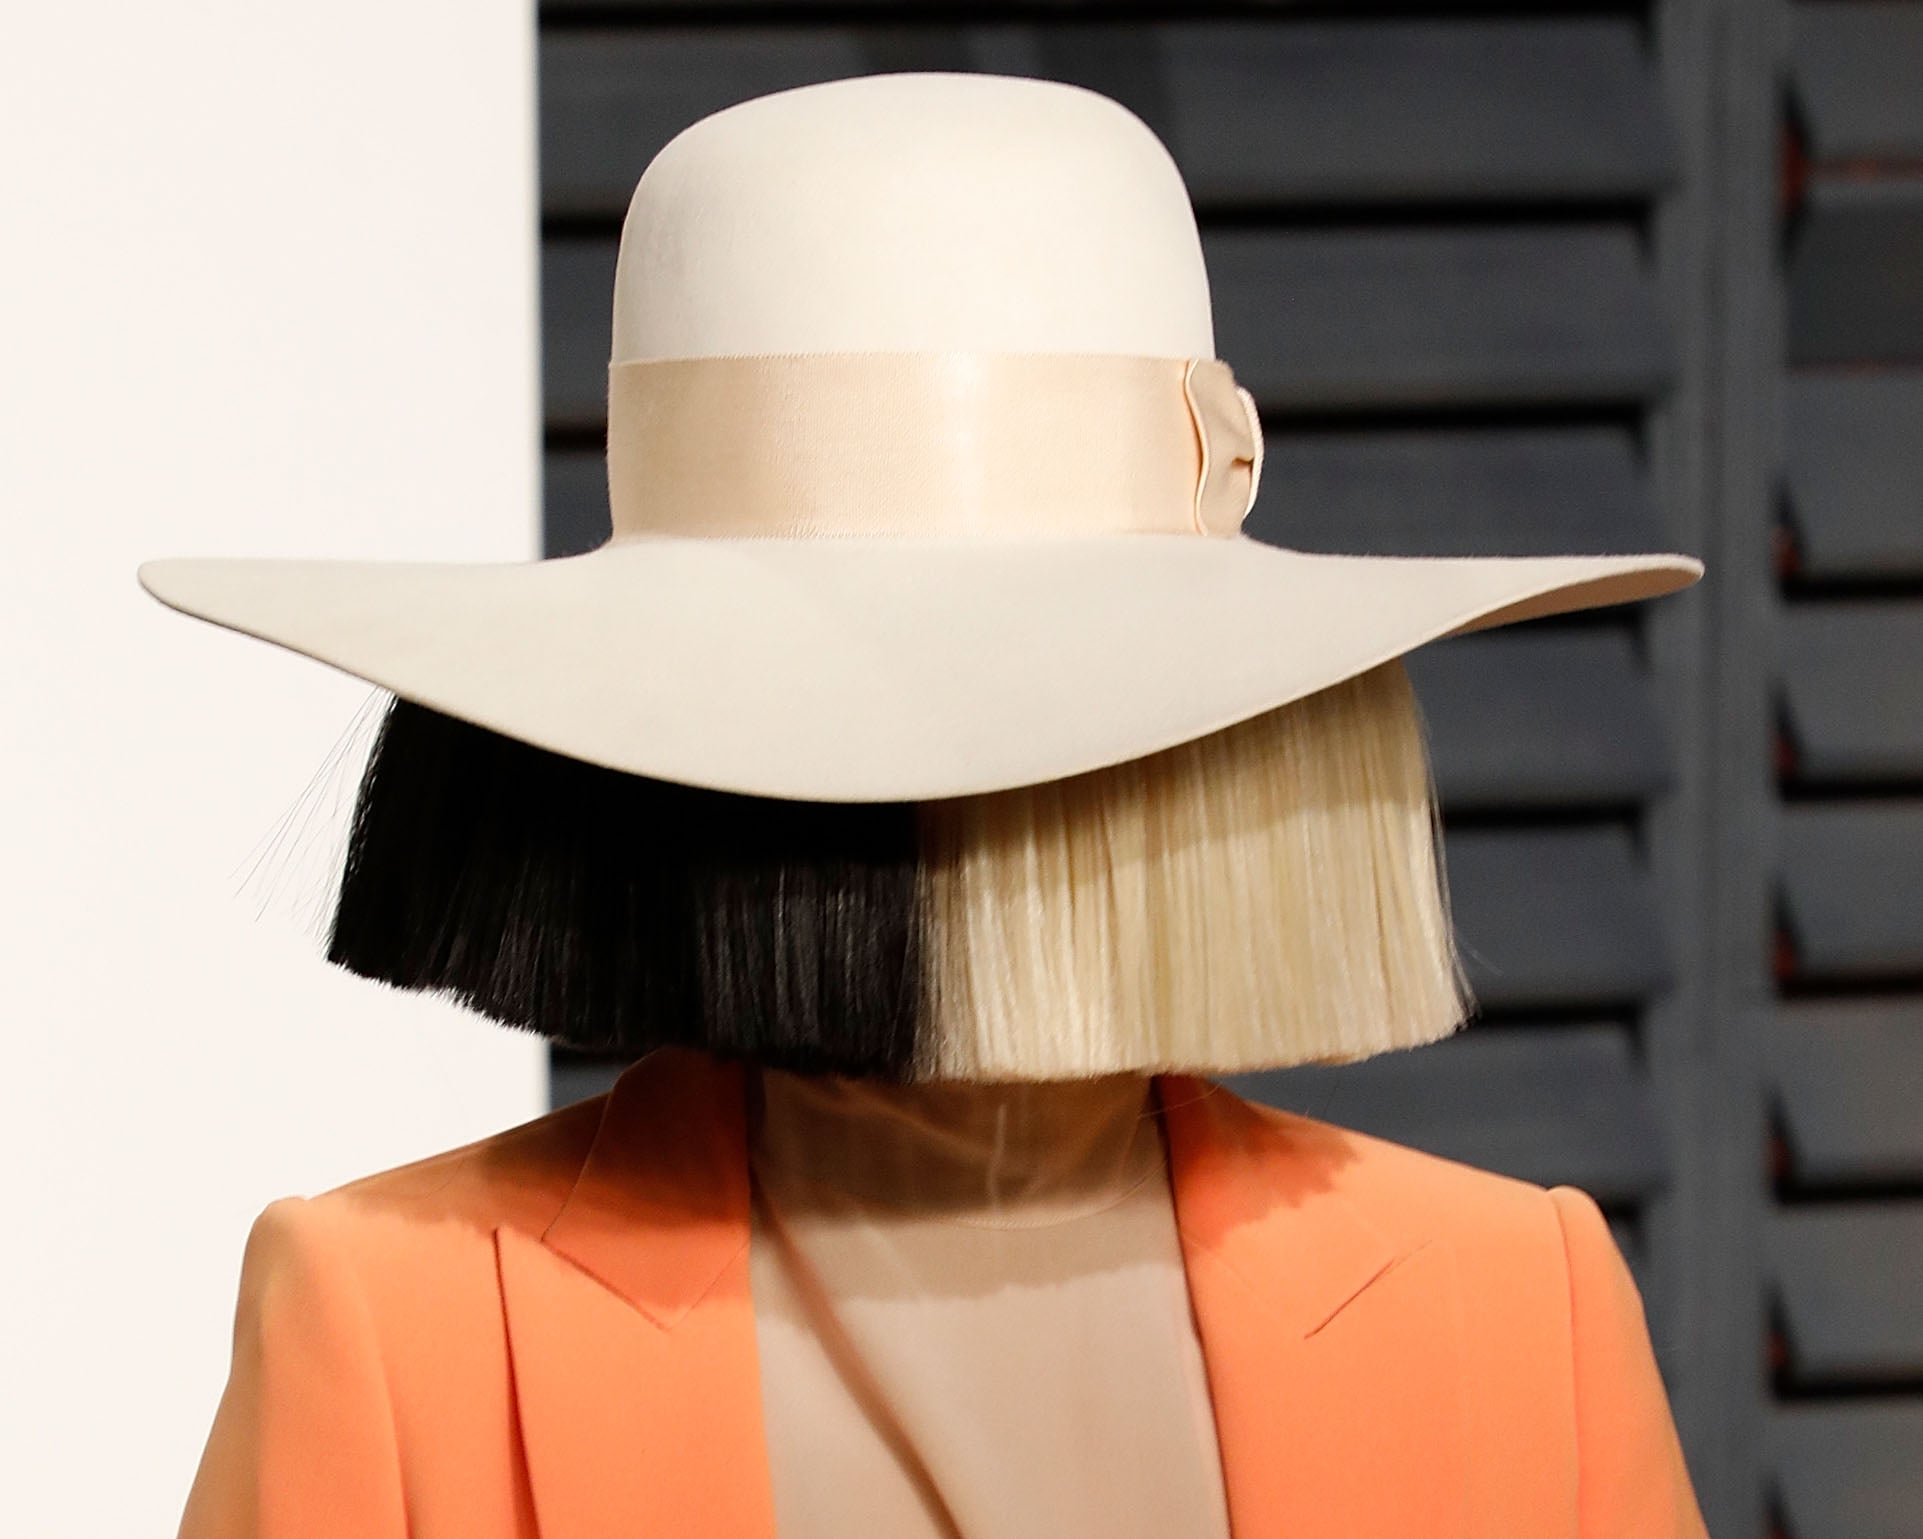 Discussion on this topic: Sia Responds to Backlash from Animal Rights , sia-responds-to-backlash-from-animal-rights/